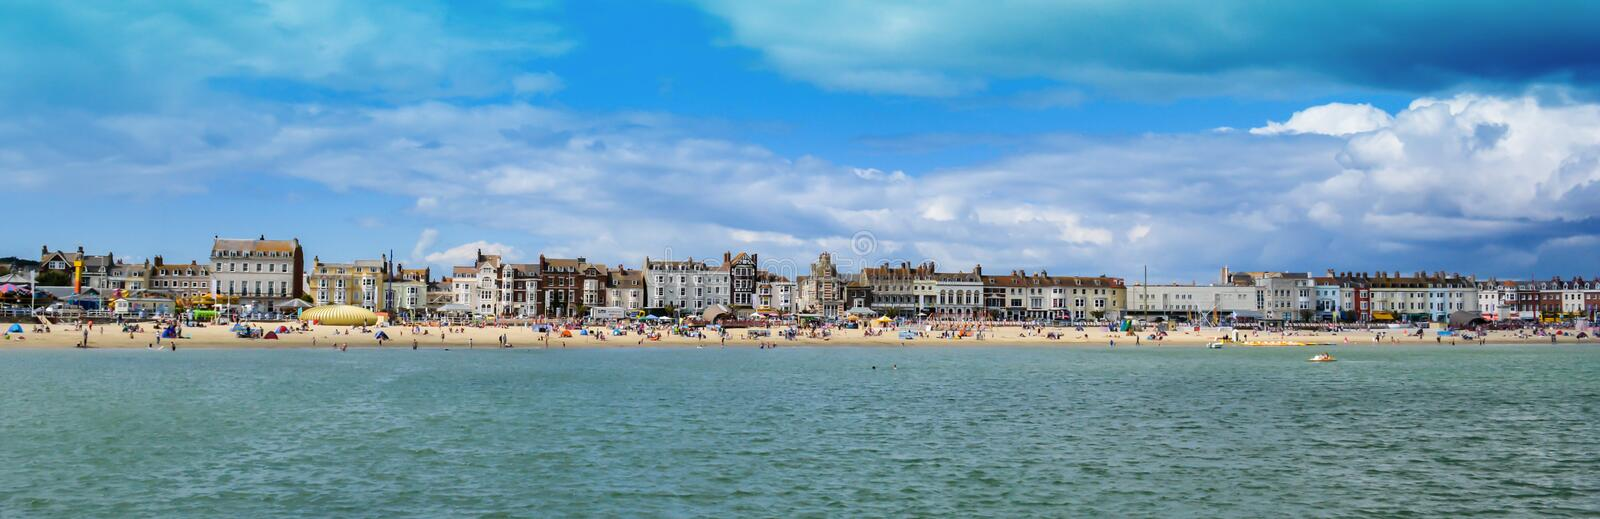 Weymouth Seafront. The famous British sea side at Weymouth, Dorset stock images